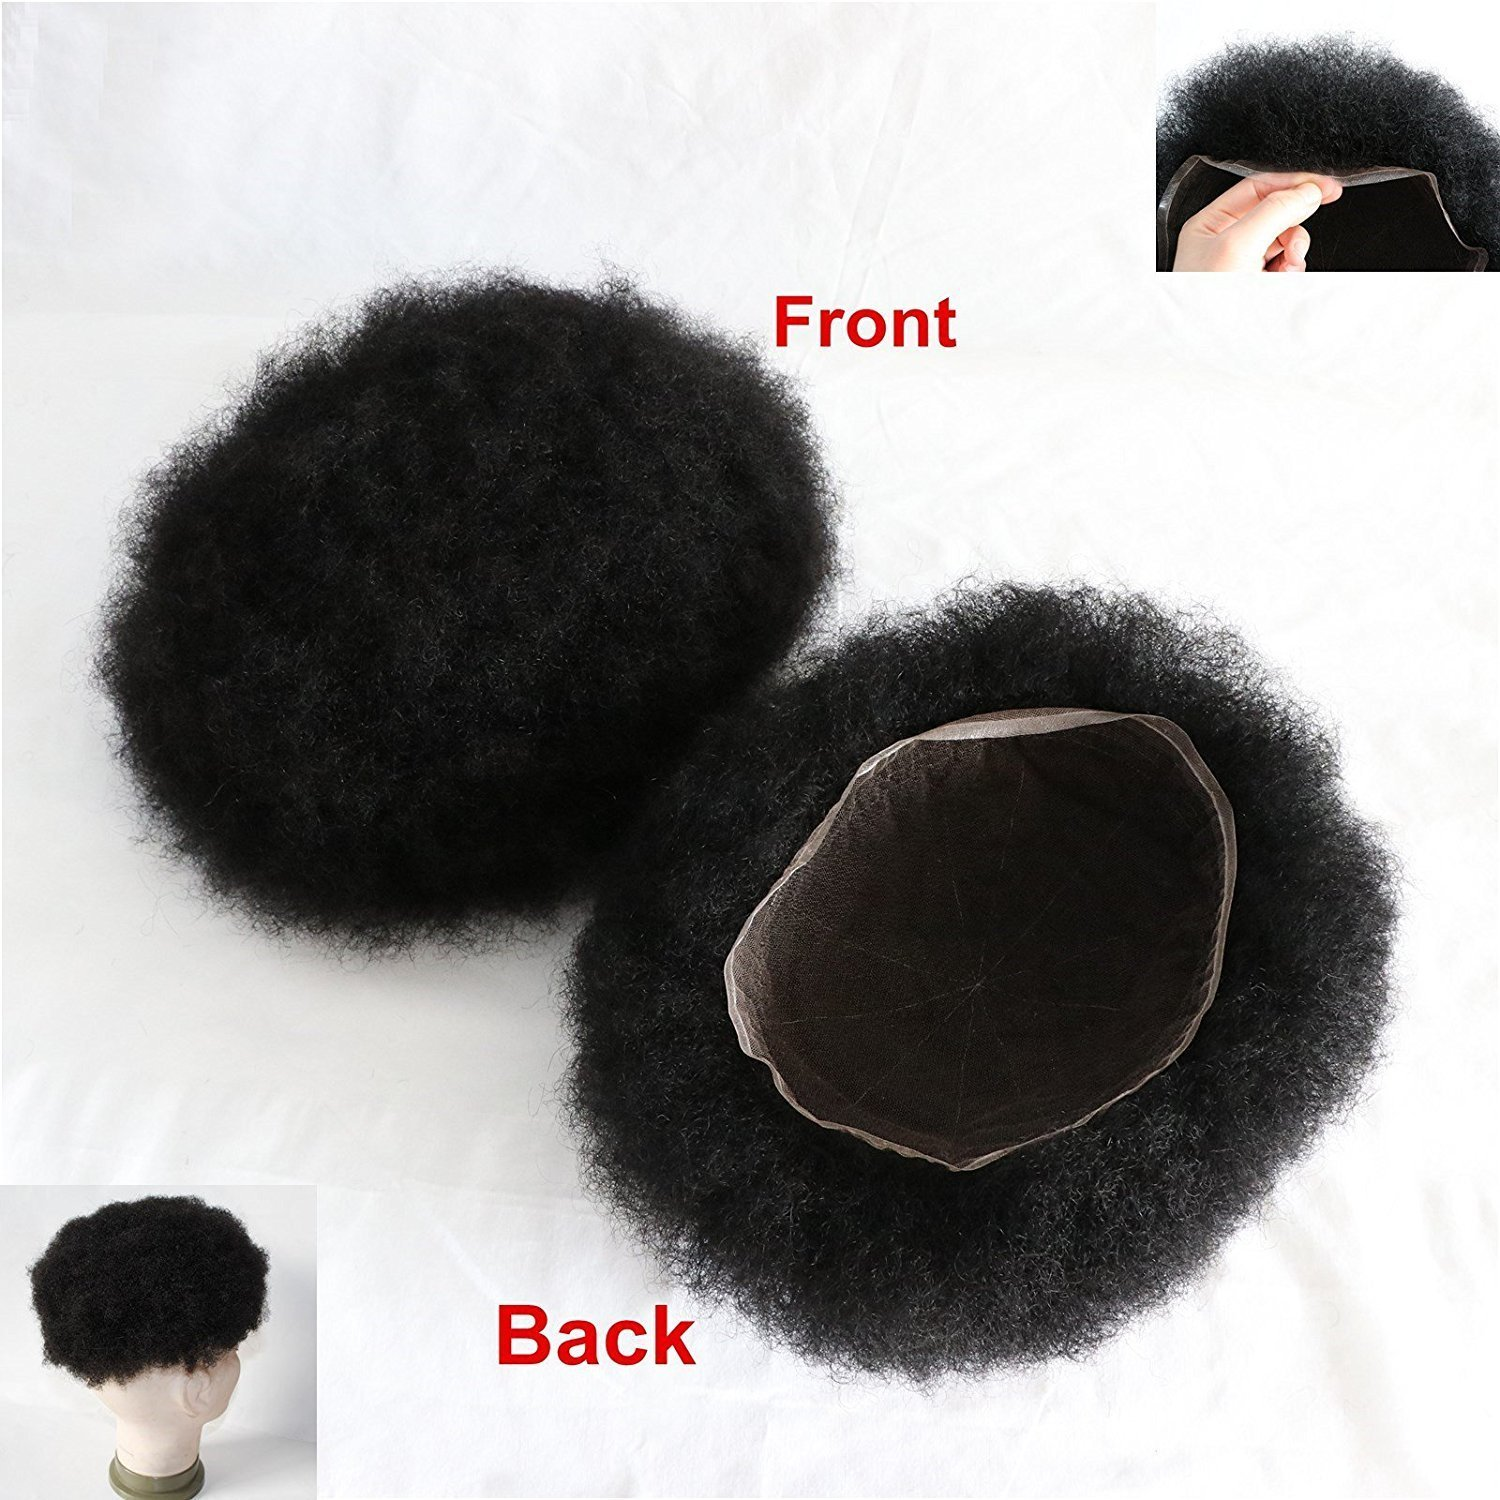 Lumeng Men's Toupee for Black Men Afro Toupee African American Wigs 8x10inch African Curly Afro Mens Llace Front Wig man weave #1 Jet Black Invisible Lace System 120% Density 100% Human Hair